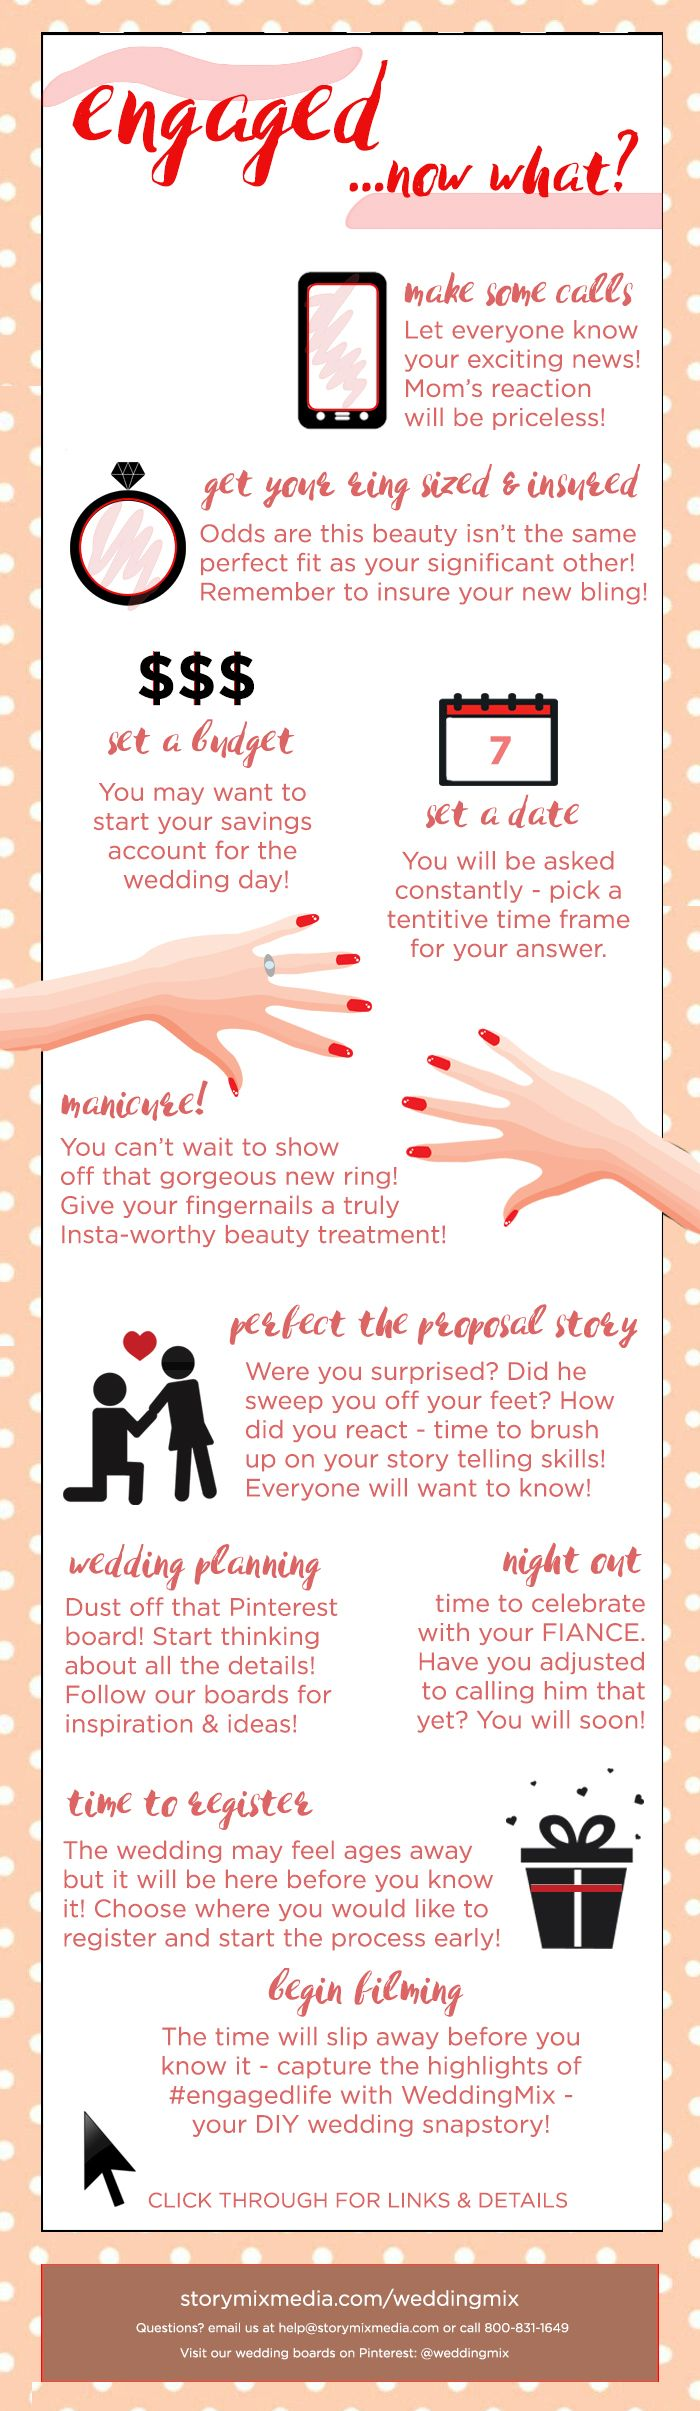 Don't miss these tips & tricks to navigate your newly engaged period! Full details on our blog!